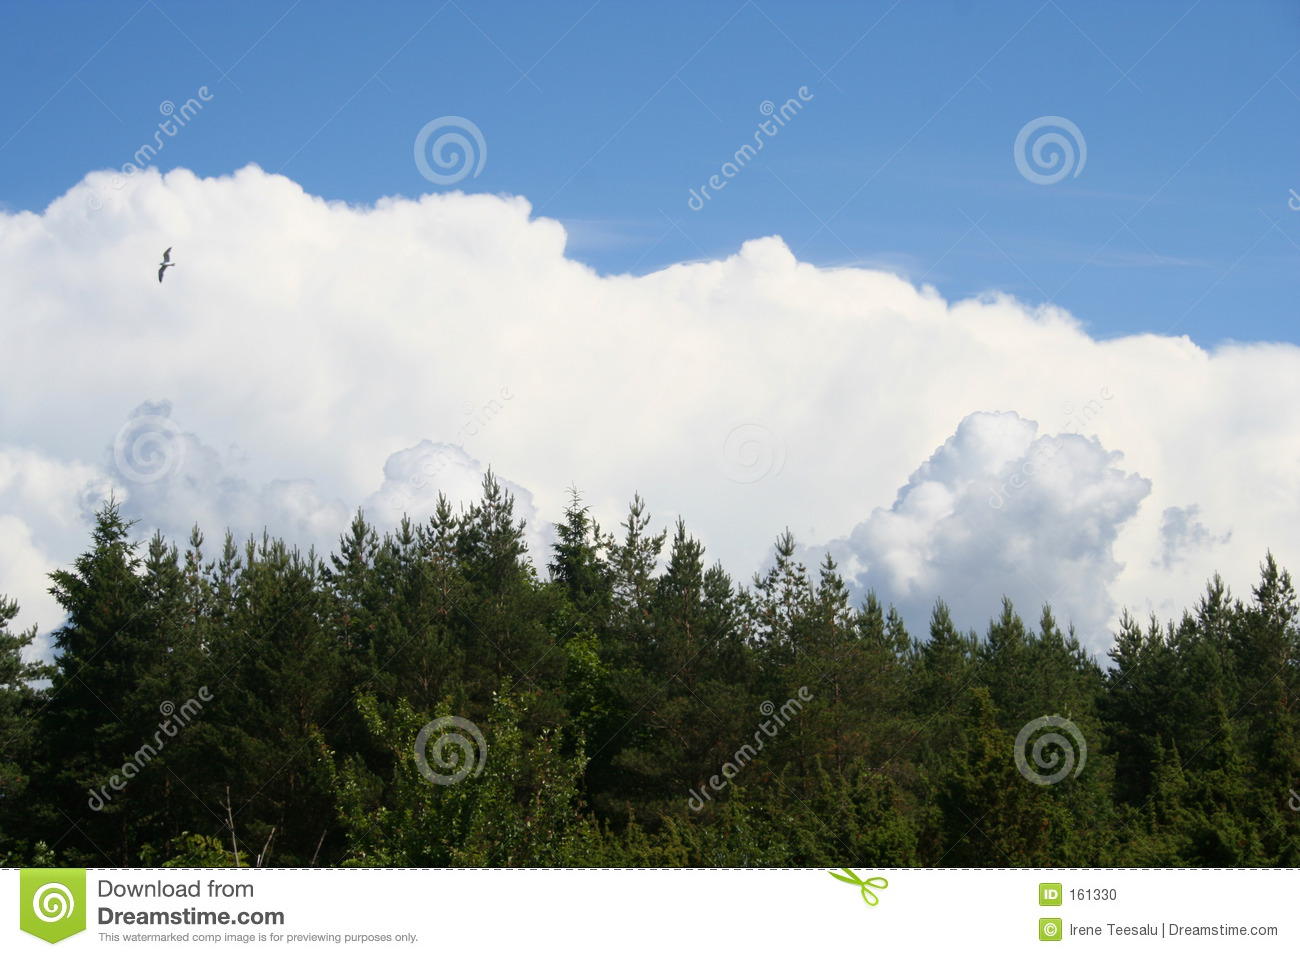 Sky, clouds, forest